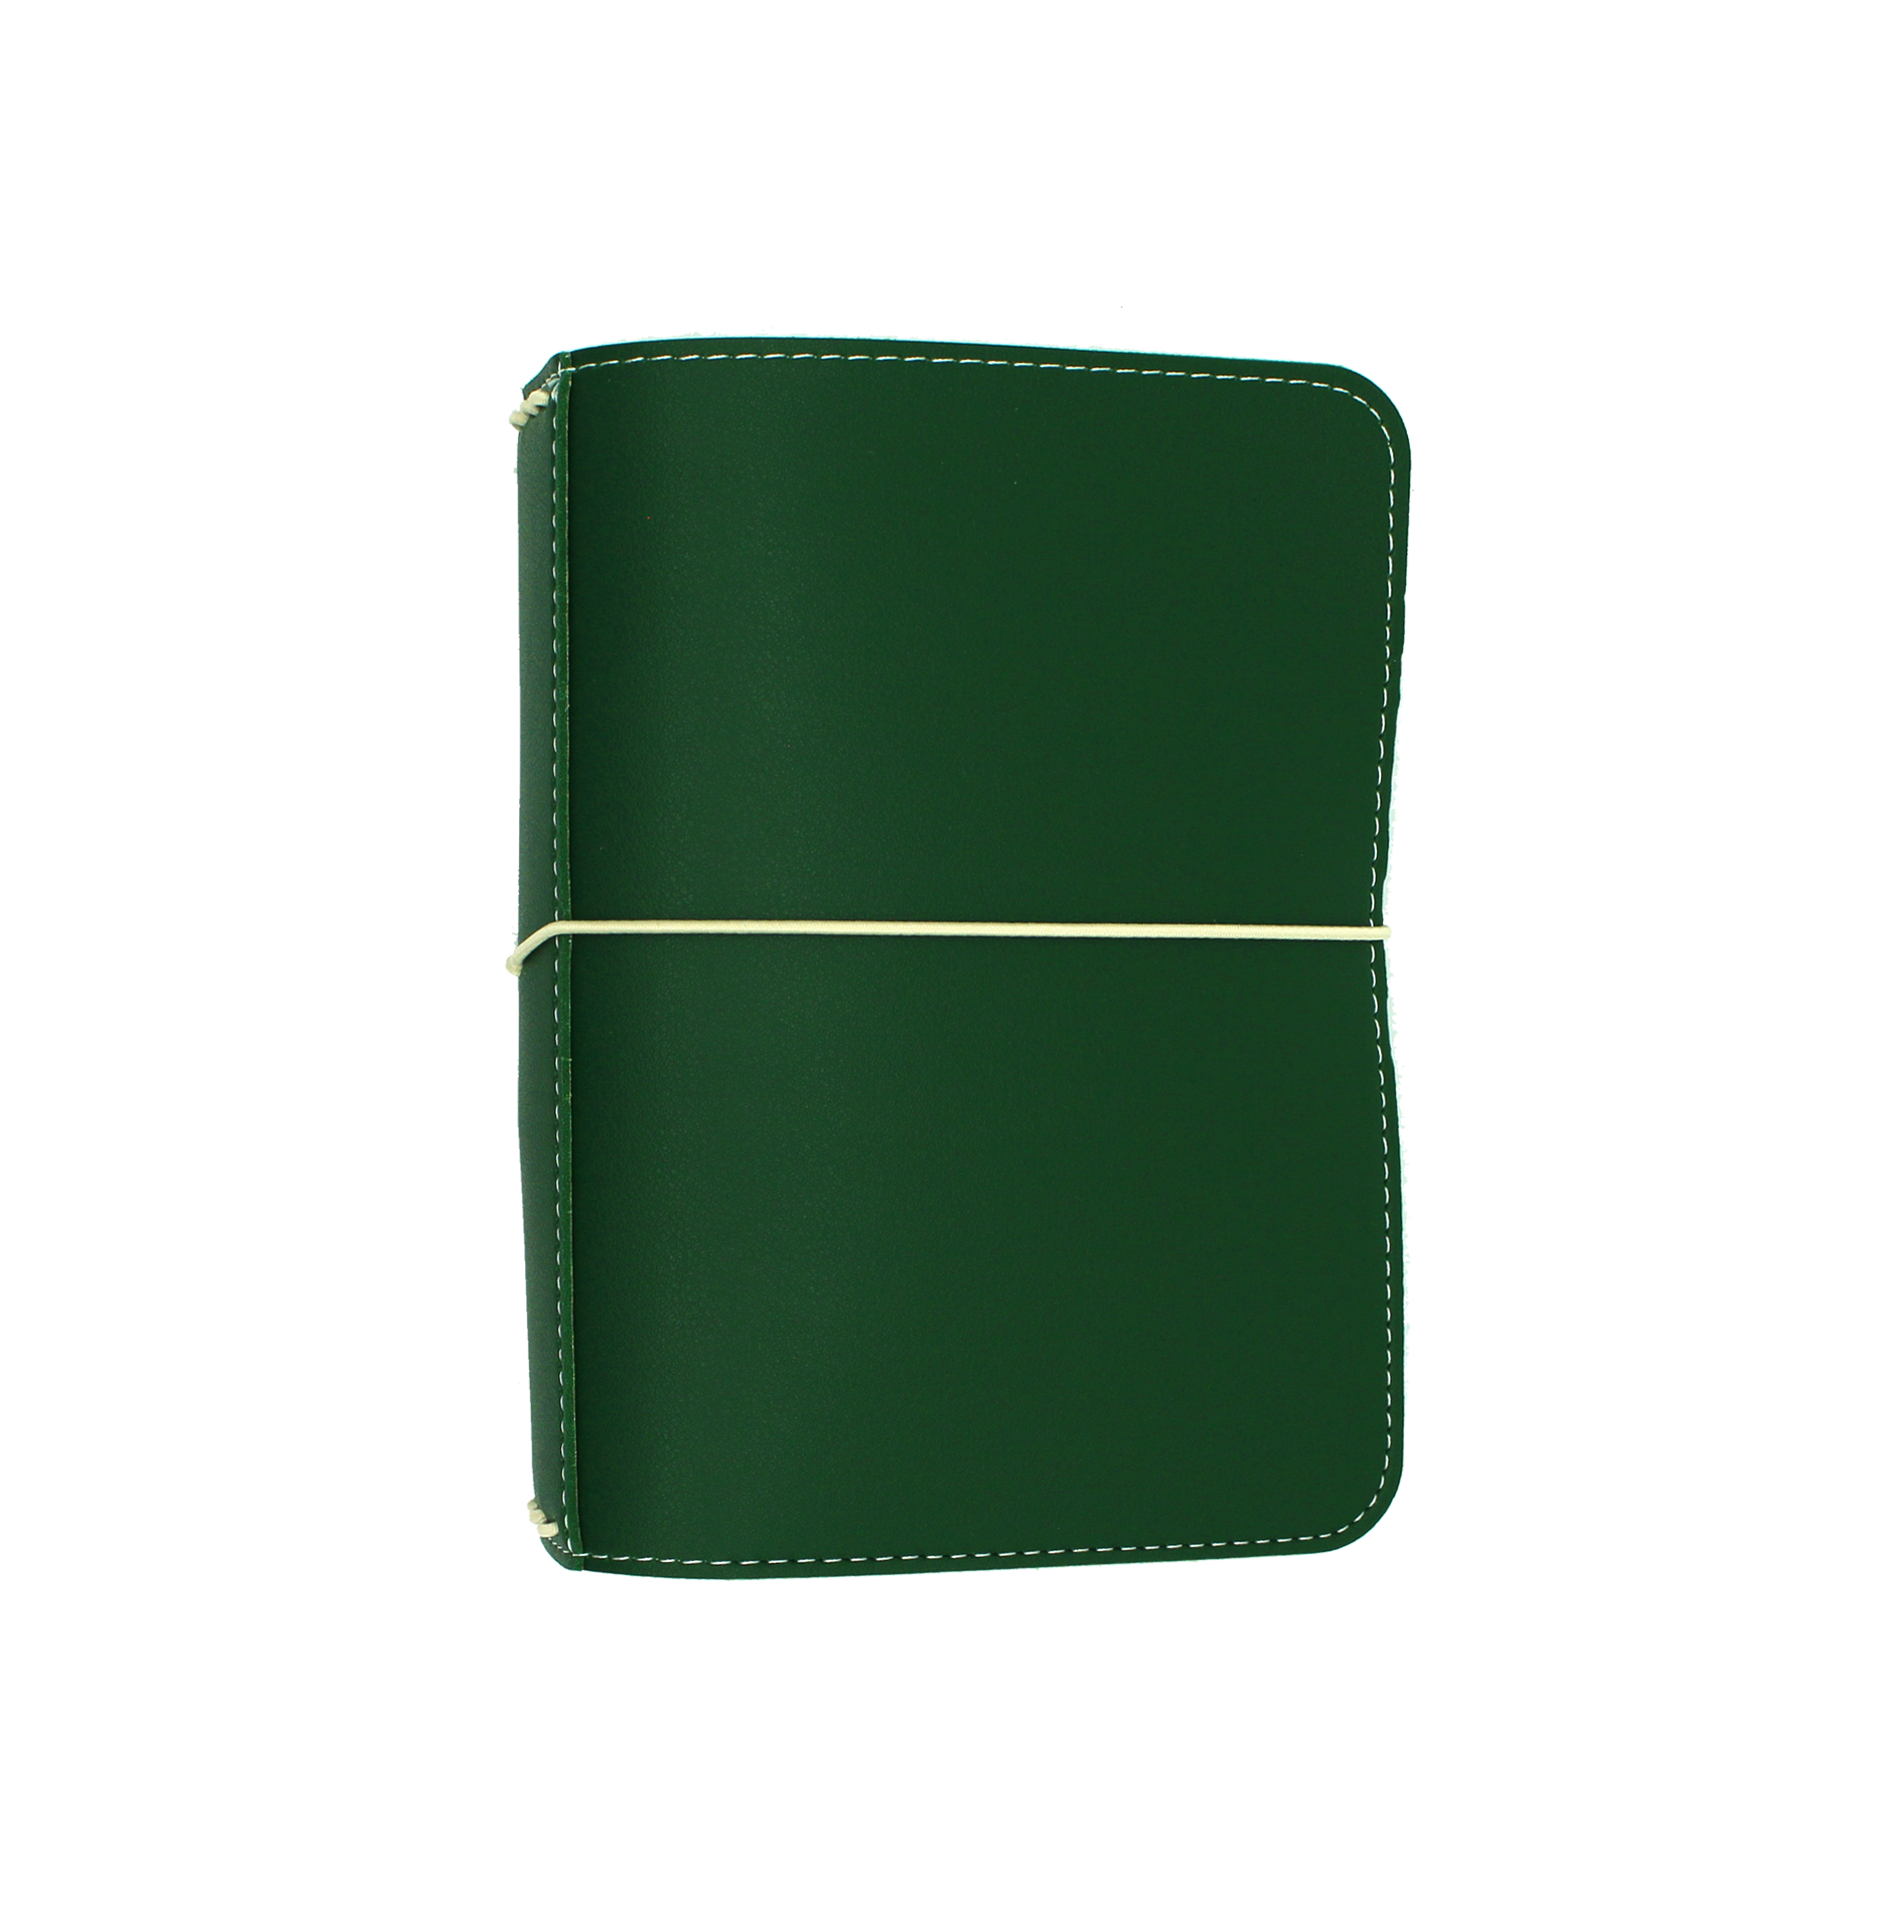 Perfect Fit B6 Travelers Notebook - Shamrock